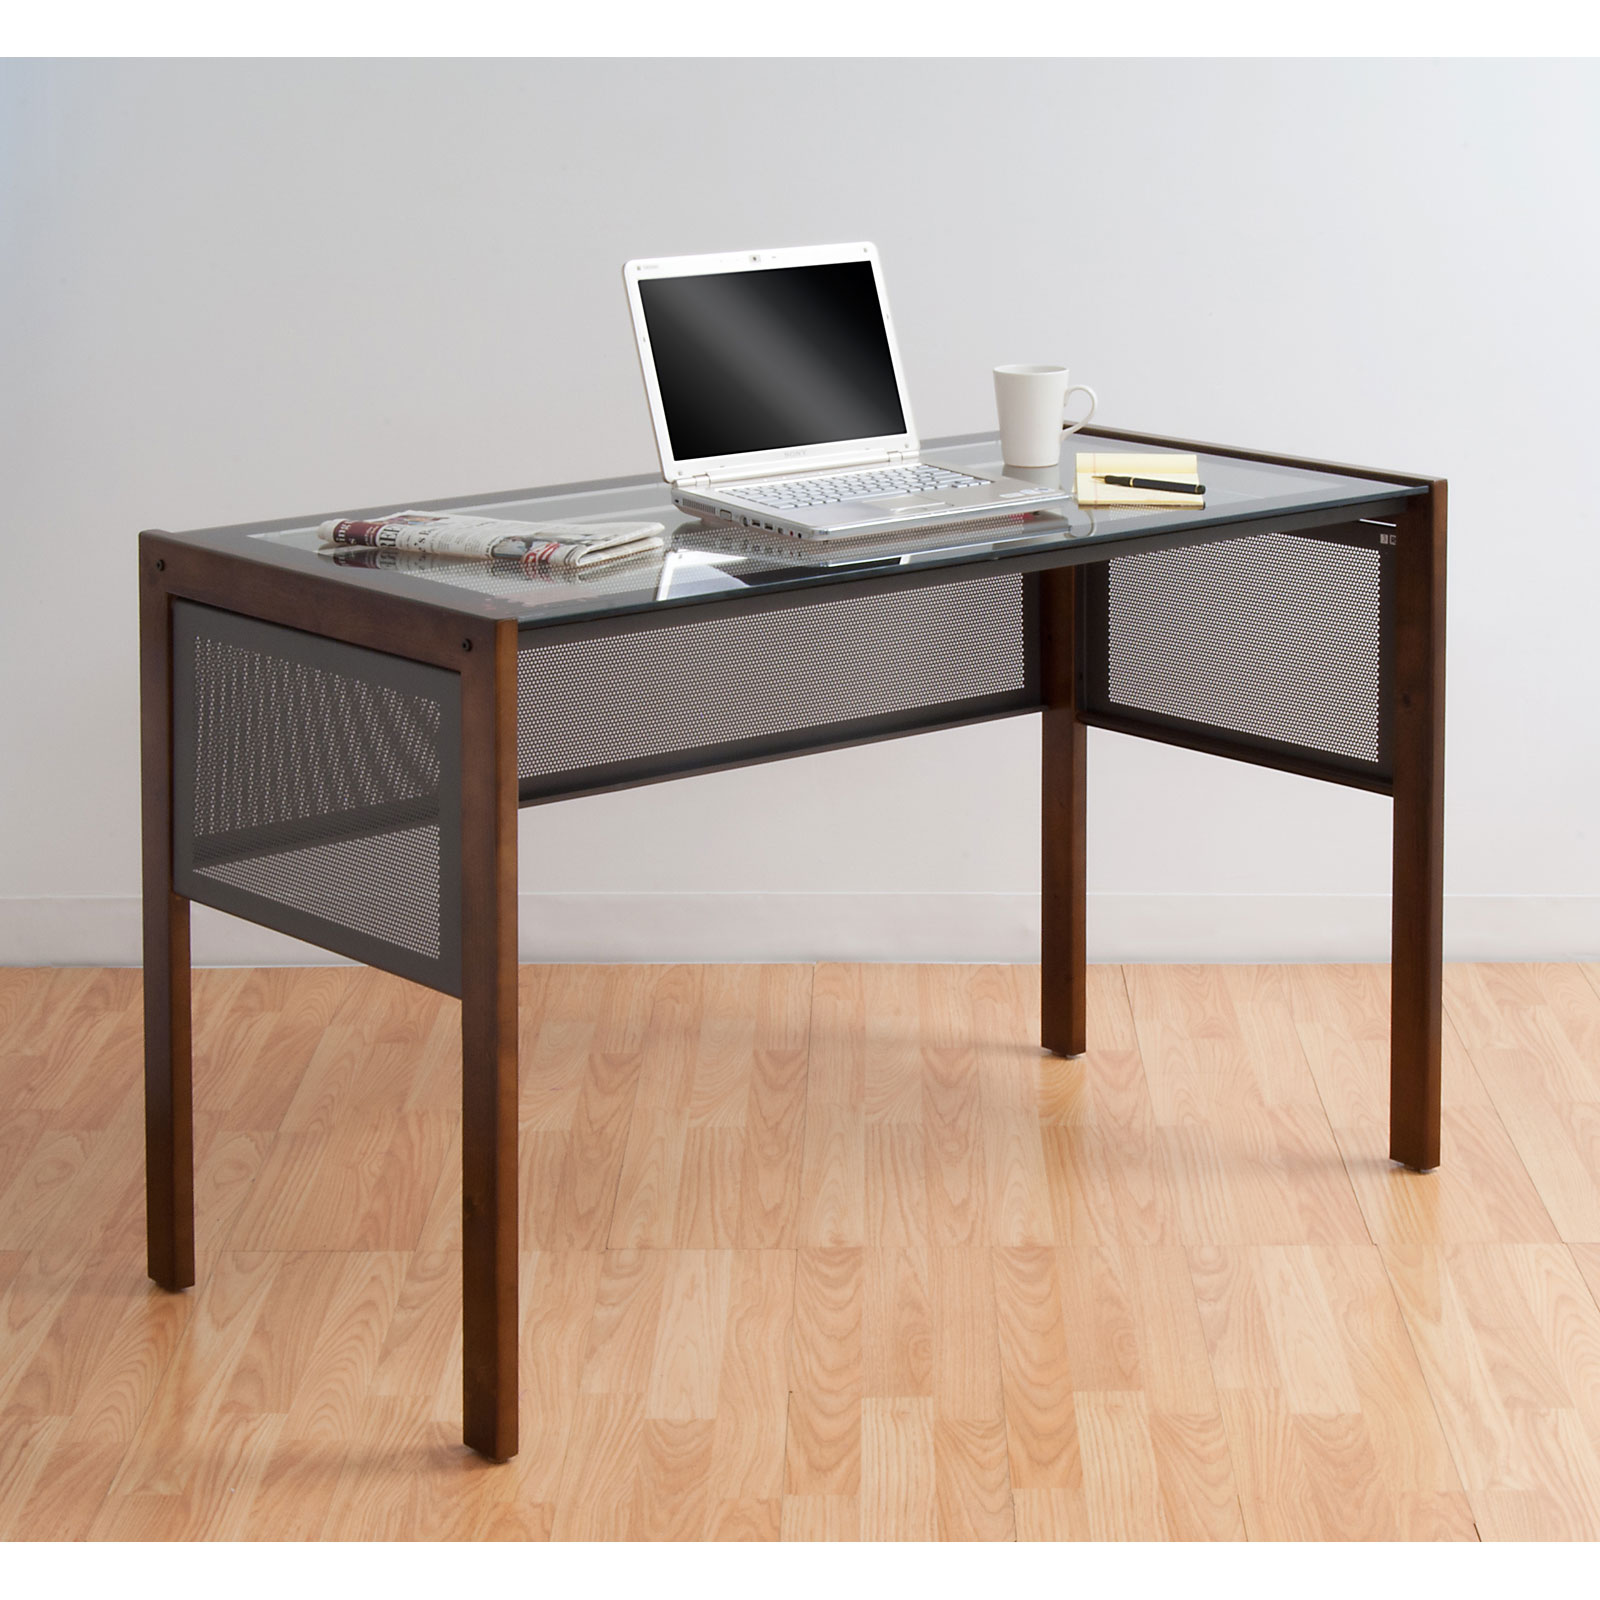 foldable office desk. Calico Designs Office Line II Glass Top Desk By Studio Image Foldable D